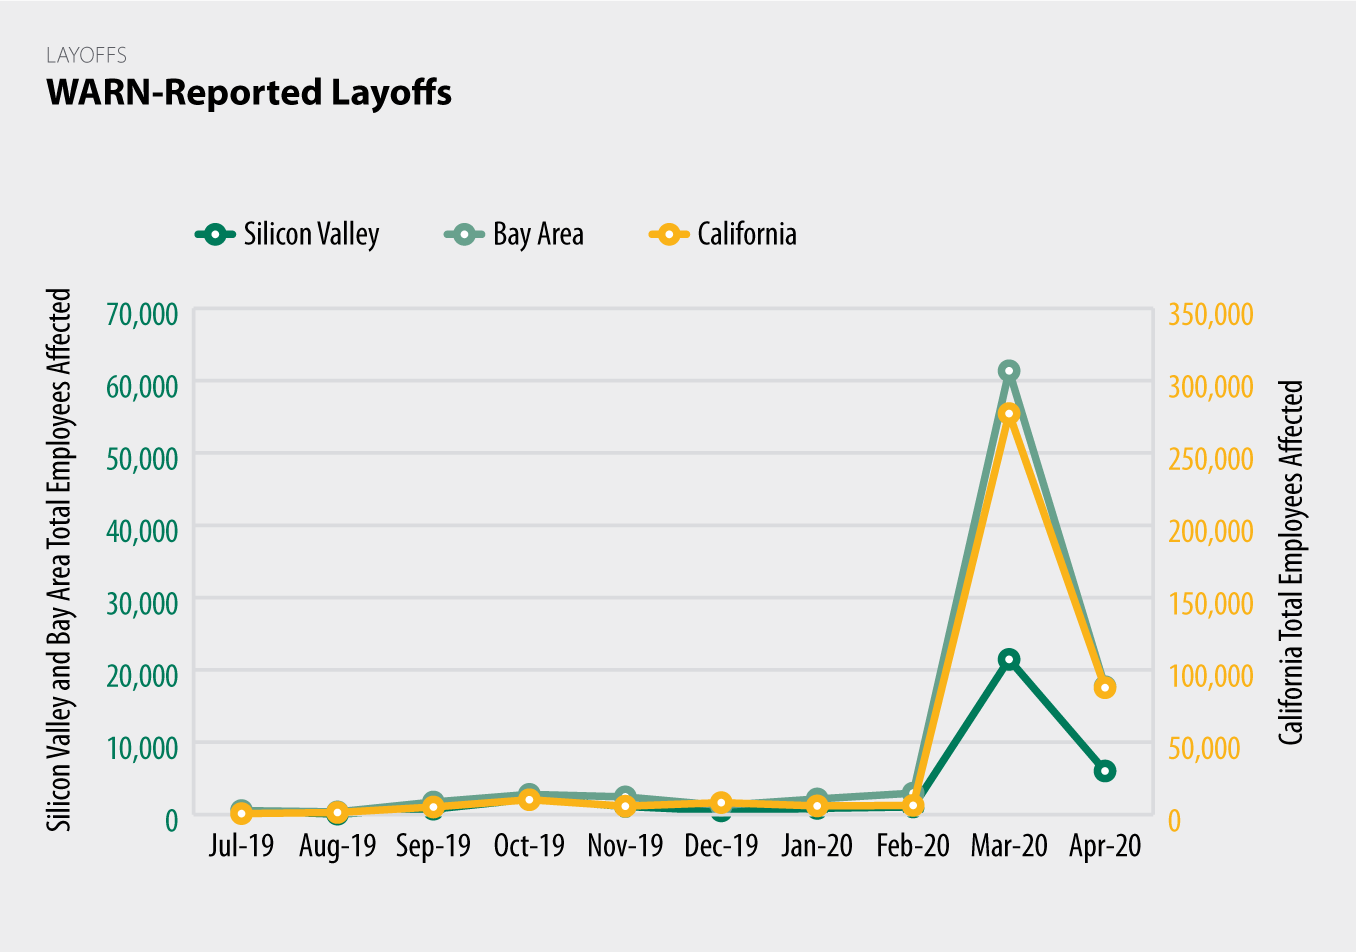 WARN-Reported Layoffs chart